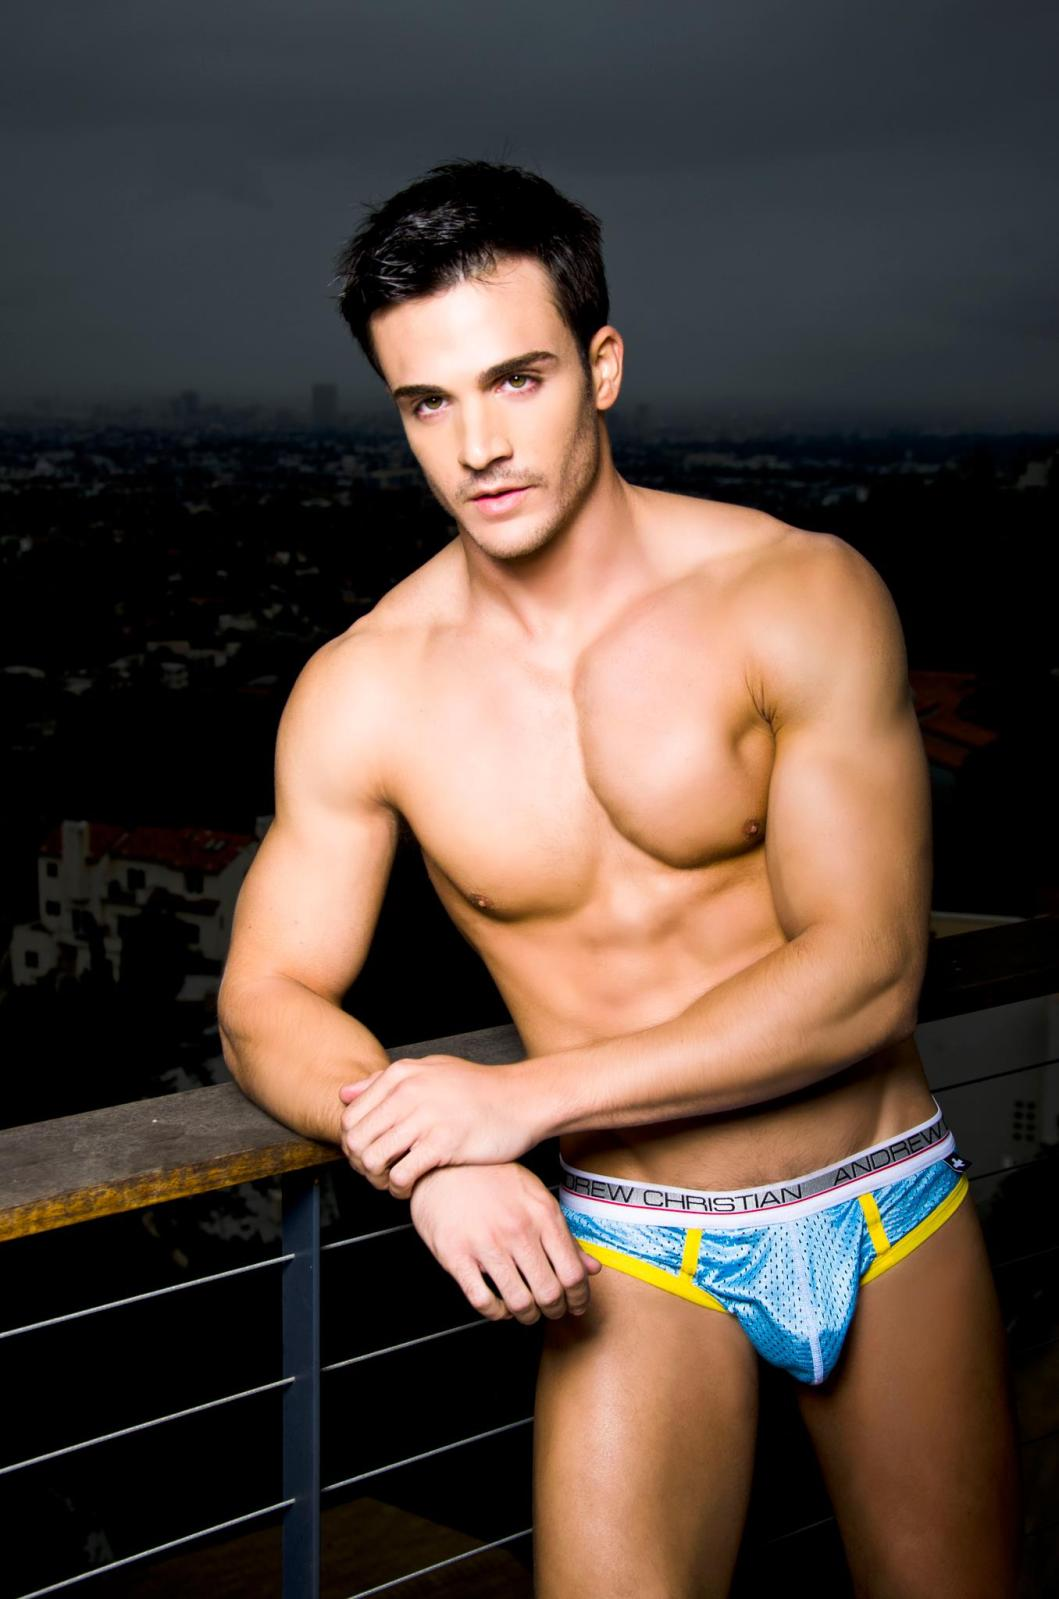 That interfere, Andrew christian underwear models male